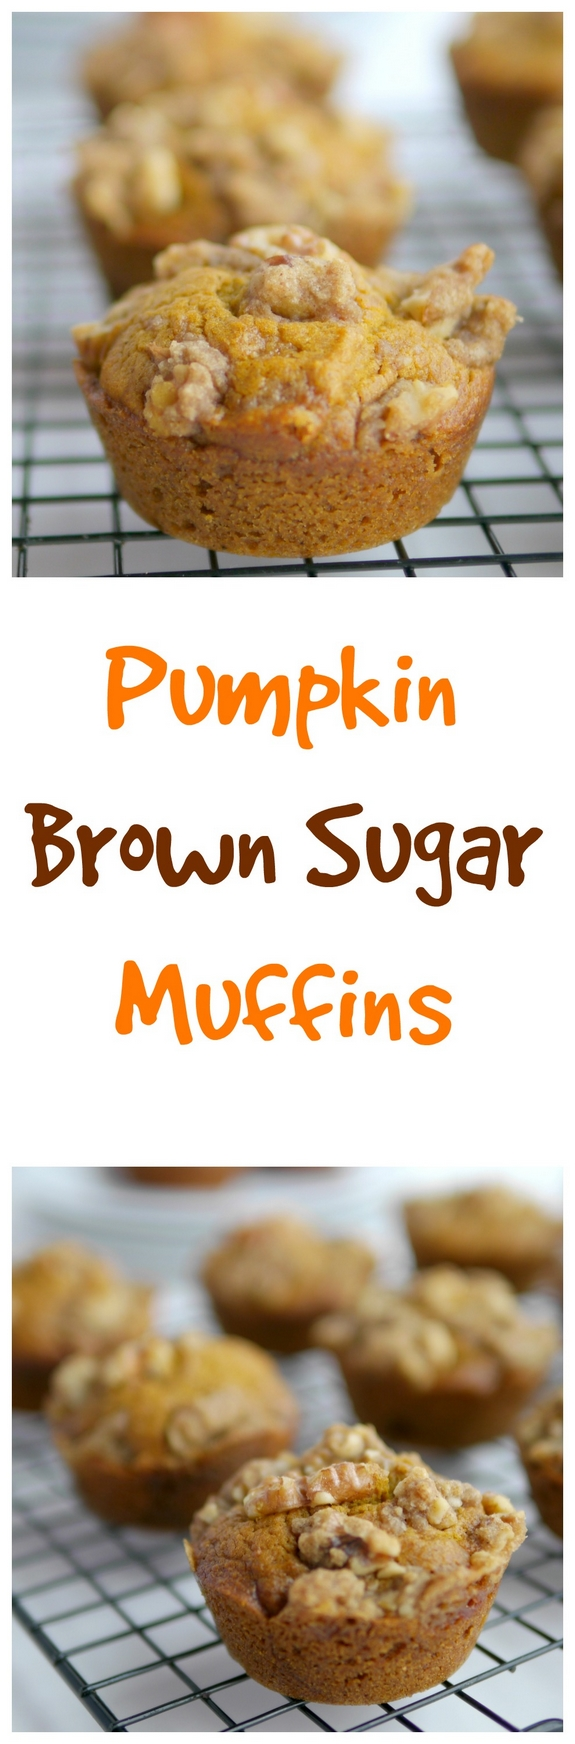 Pumpkin Brown Sugar Muffins